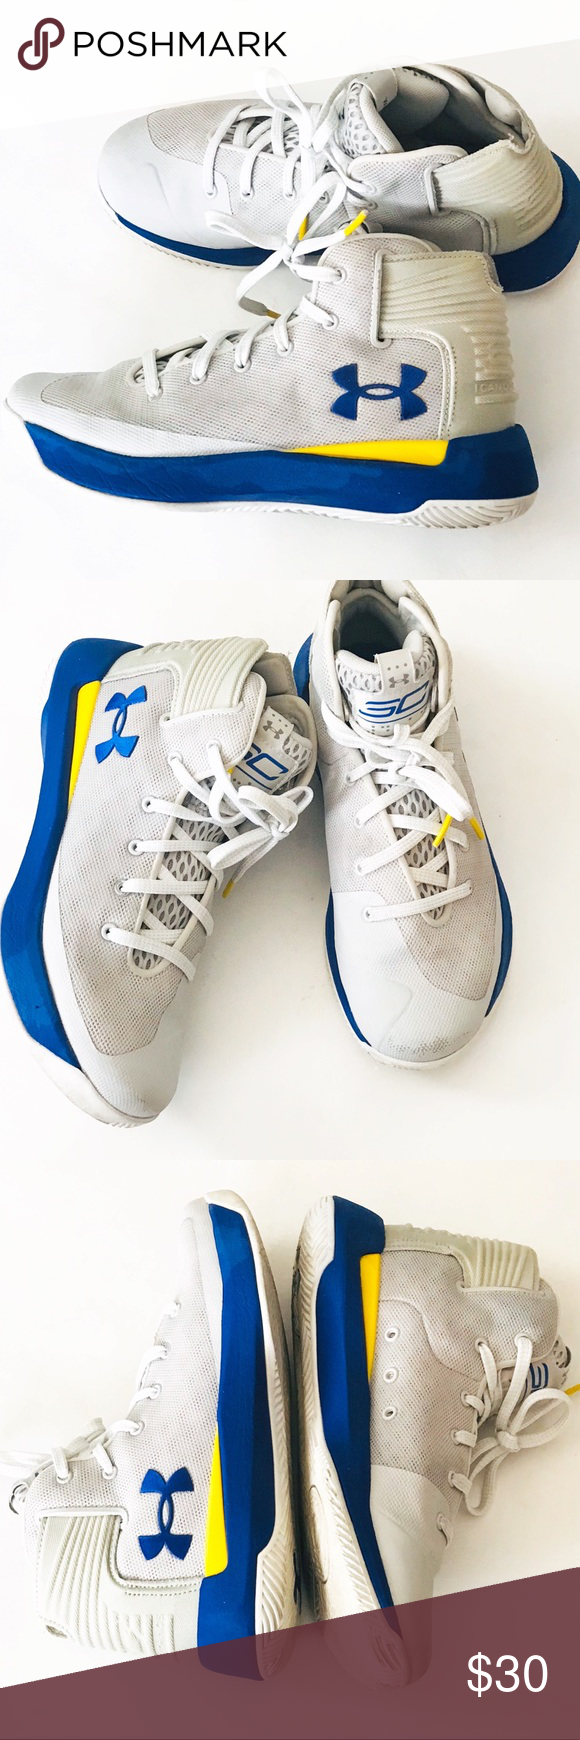 Basketball sneakers, Under armour shoes